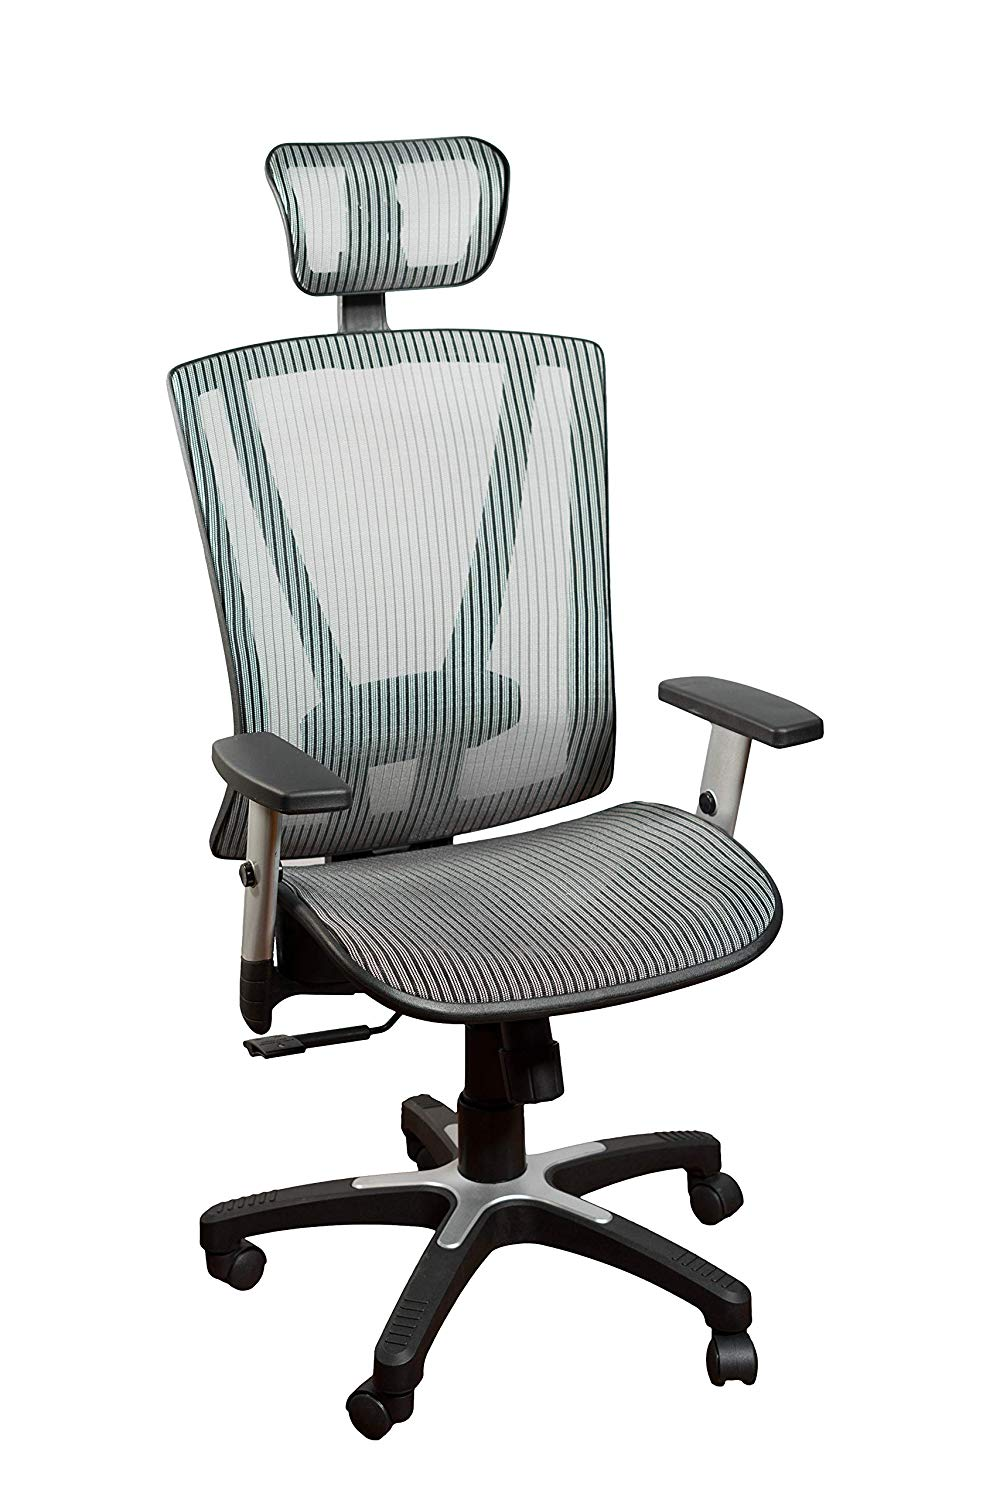 Ergomax Office MSH112GR Medium Fully Meshed Ergo Office Chair with Headrest - Brown